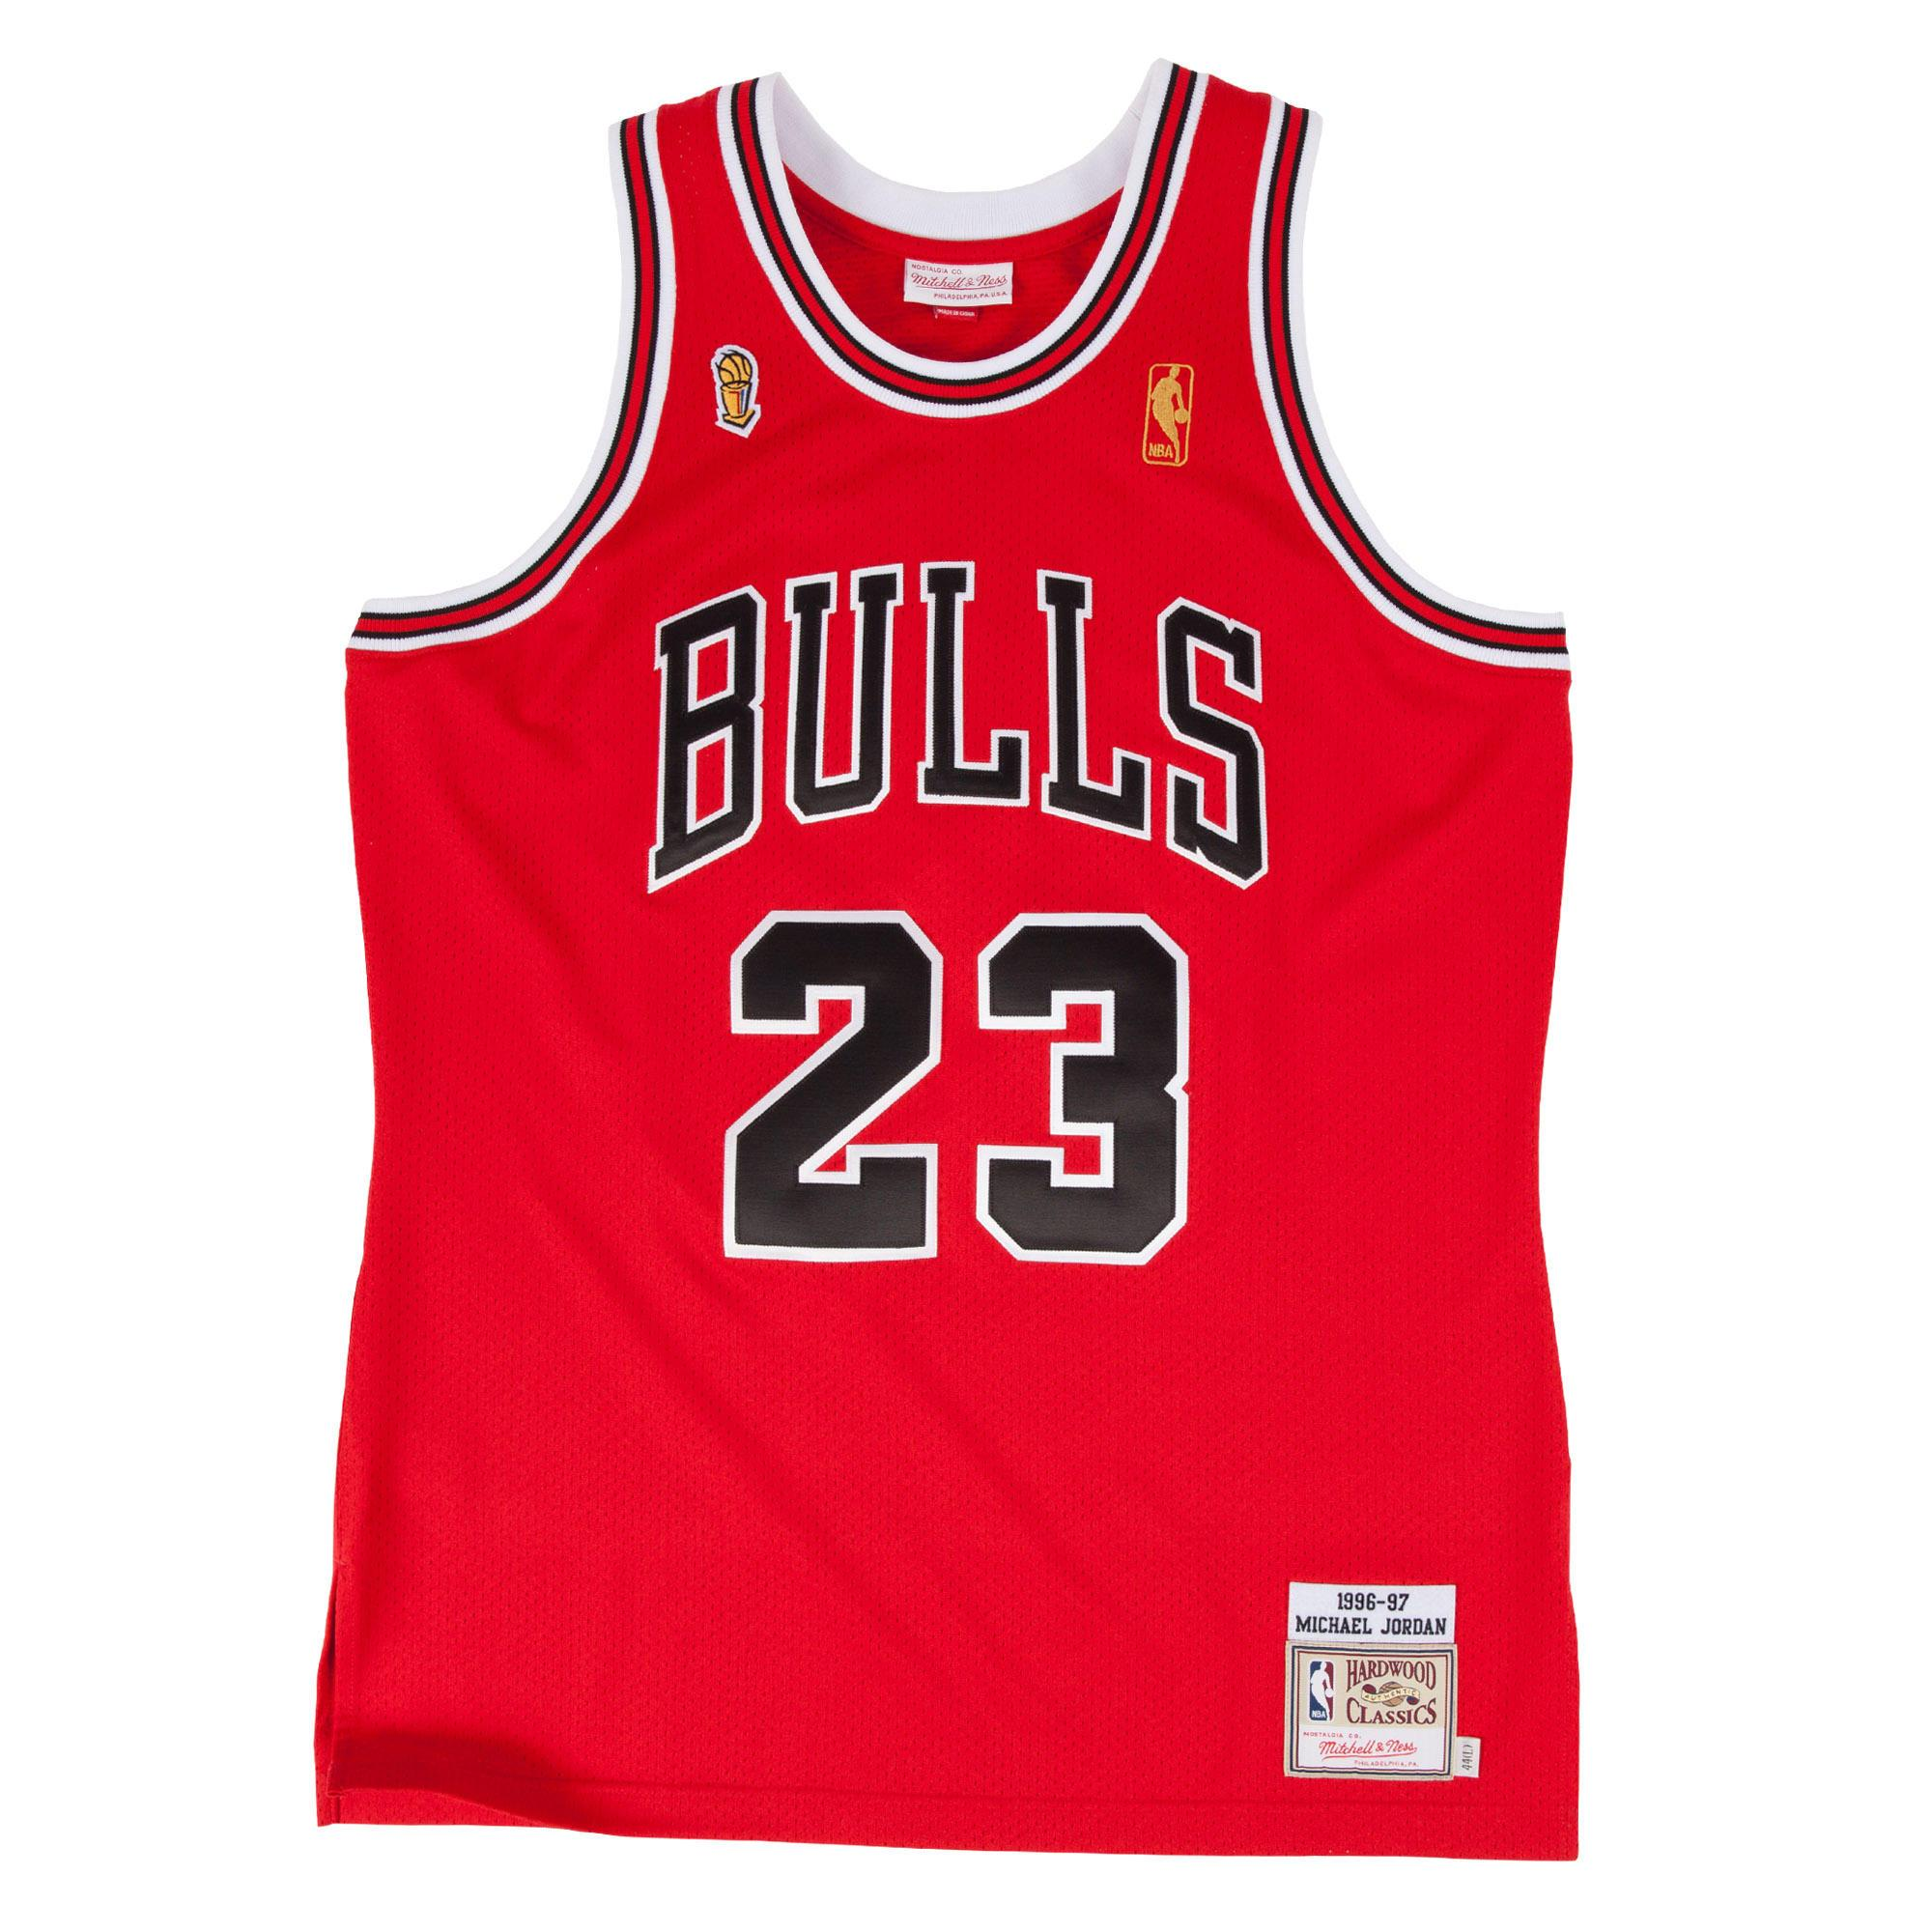 925eaaebe6e NBA BASKETBALL RETRO JERSEY Michael Jordan 1996-97 Authentic Jersey Chicago  Bulls